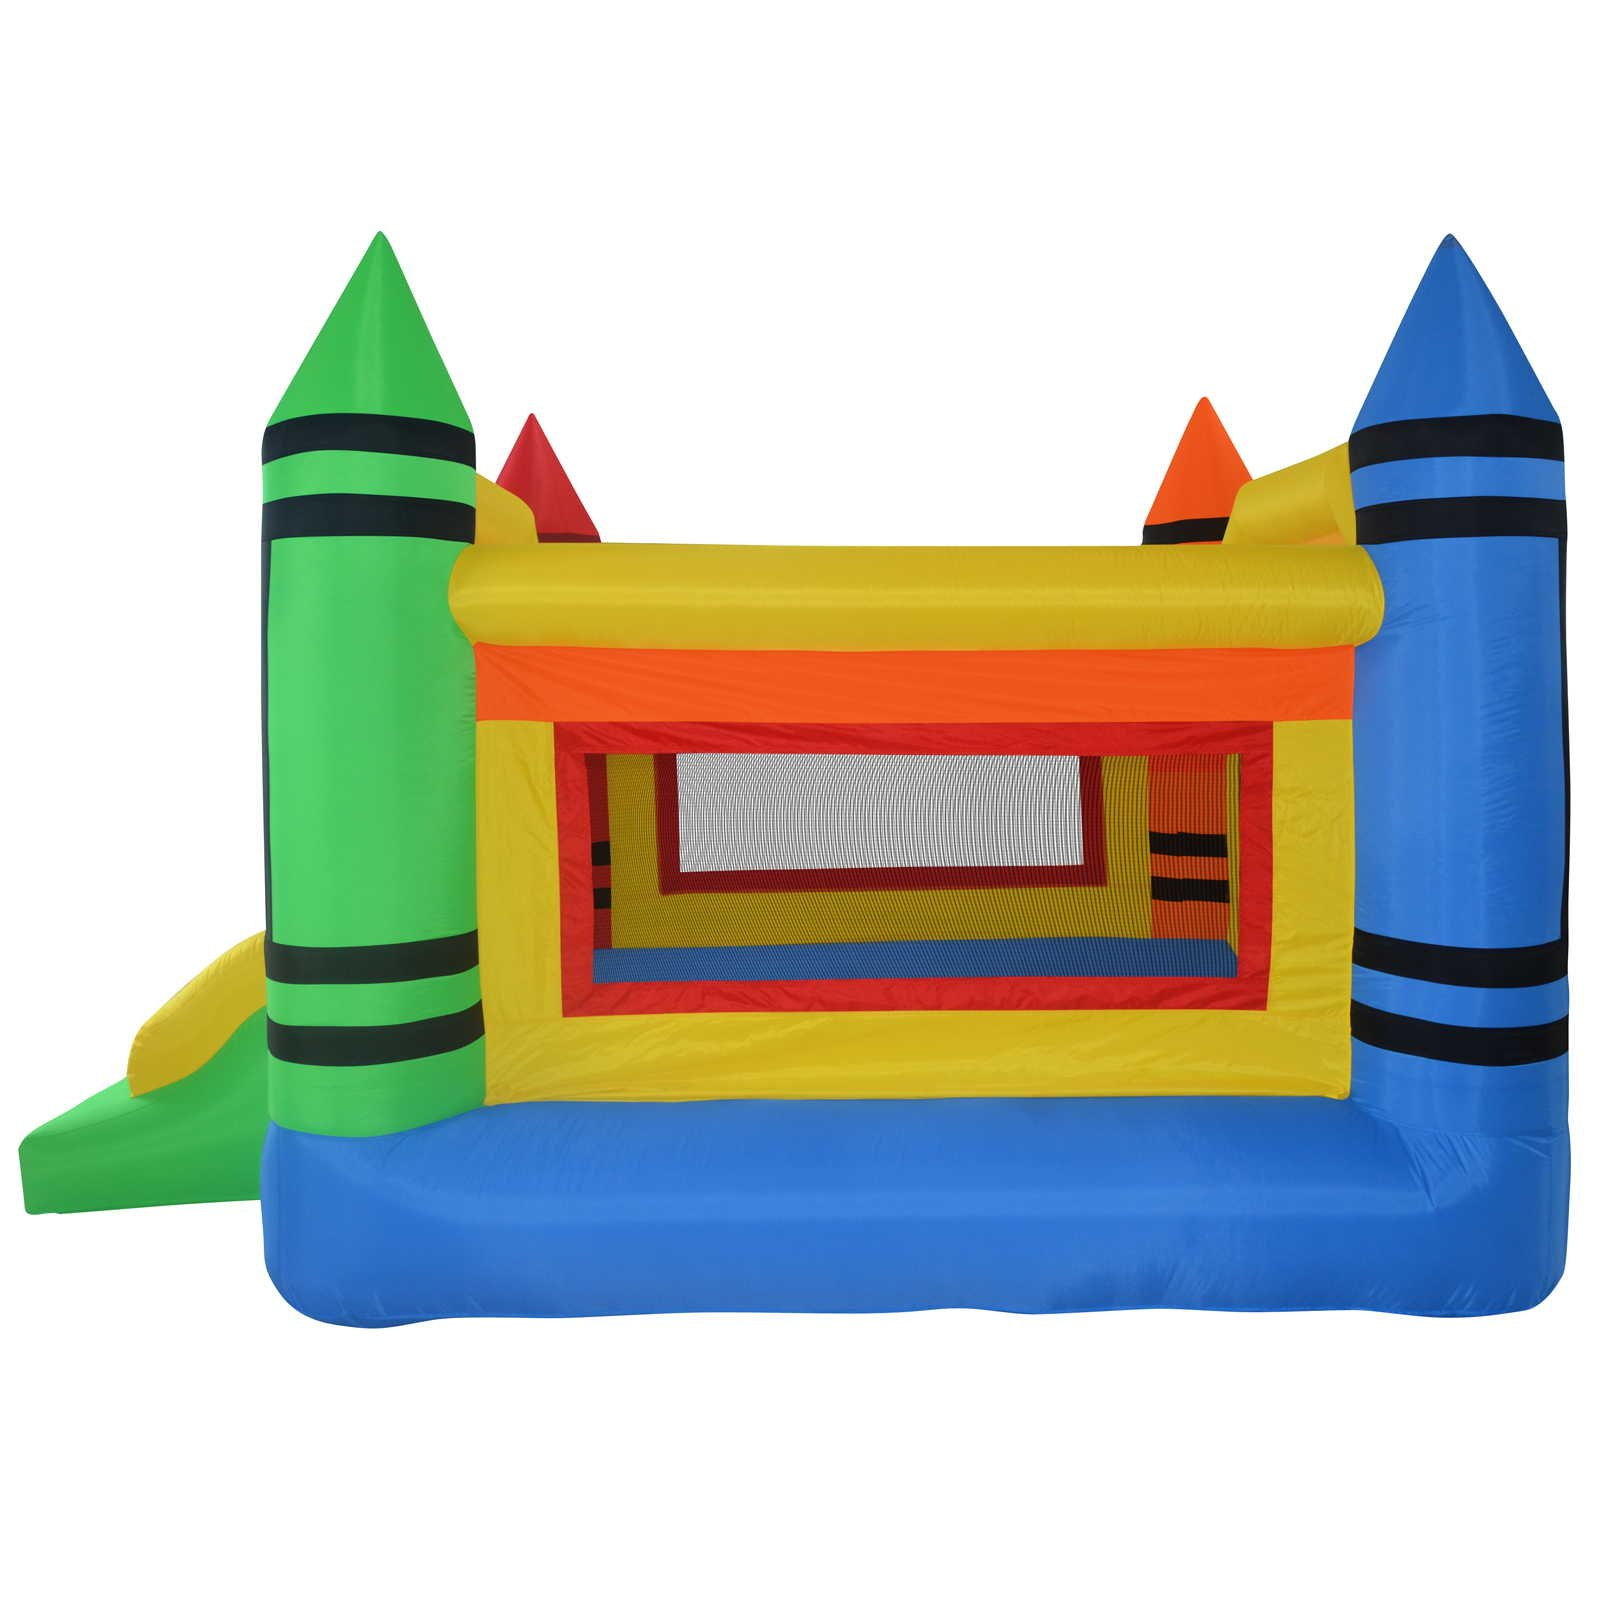 Cloud 9 Mighty Bounce House - Mini Crayon - Inflatable Kids Jumper with Blower by Cloud 9 (Image #2)